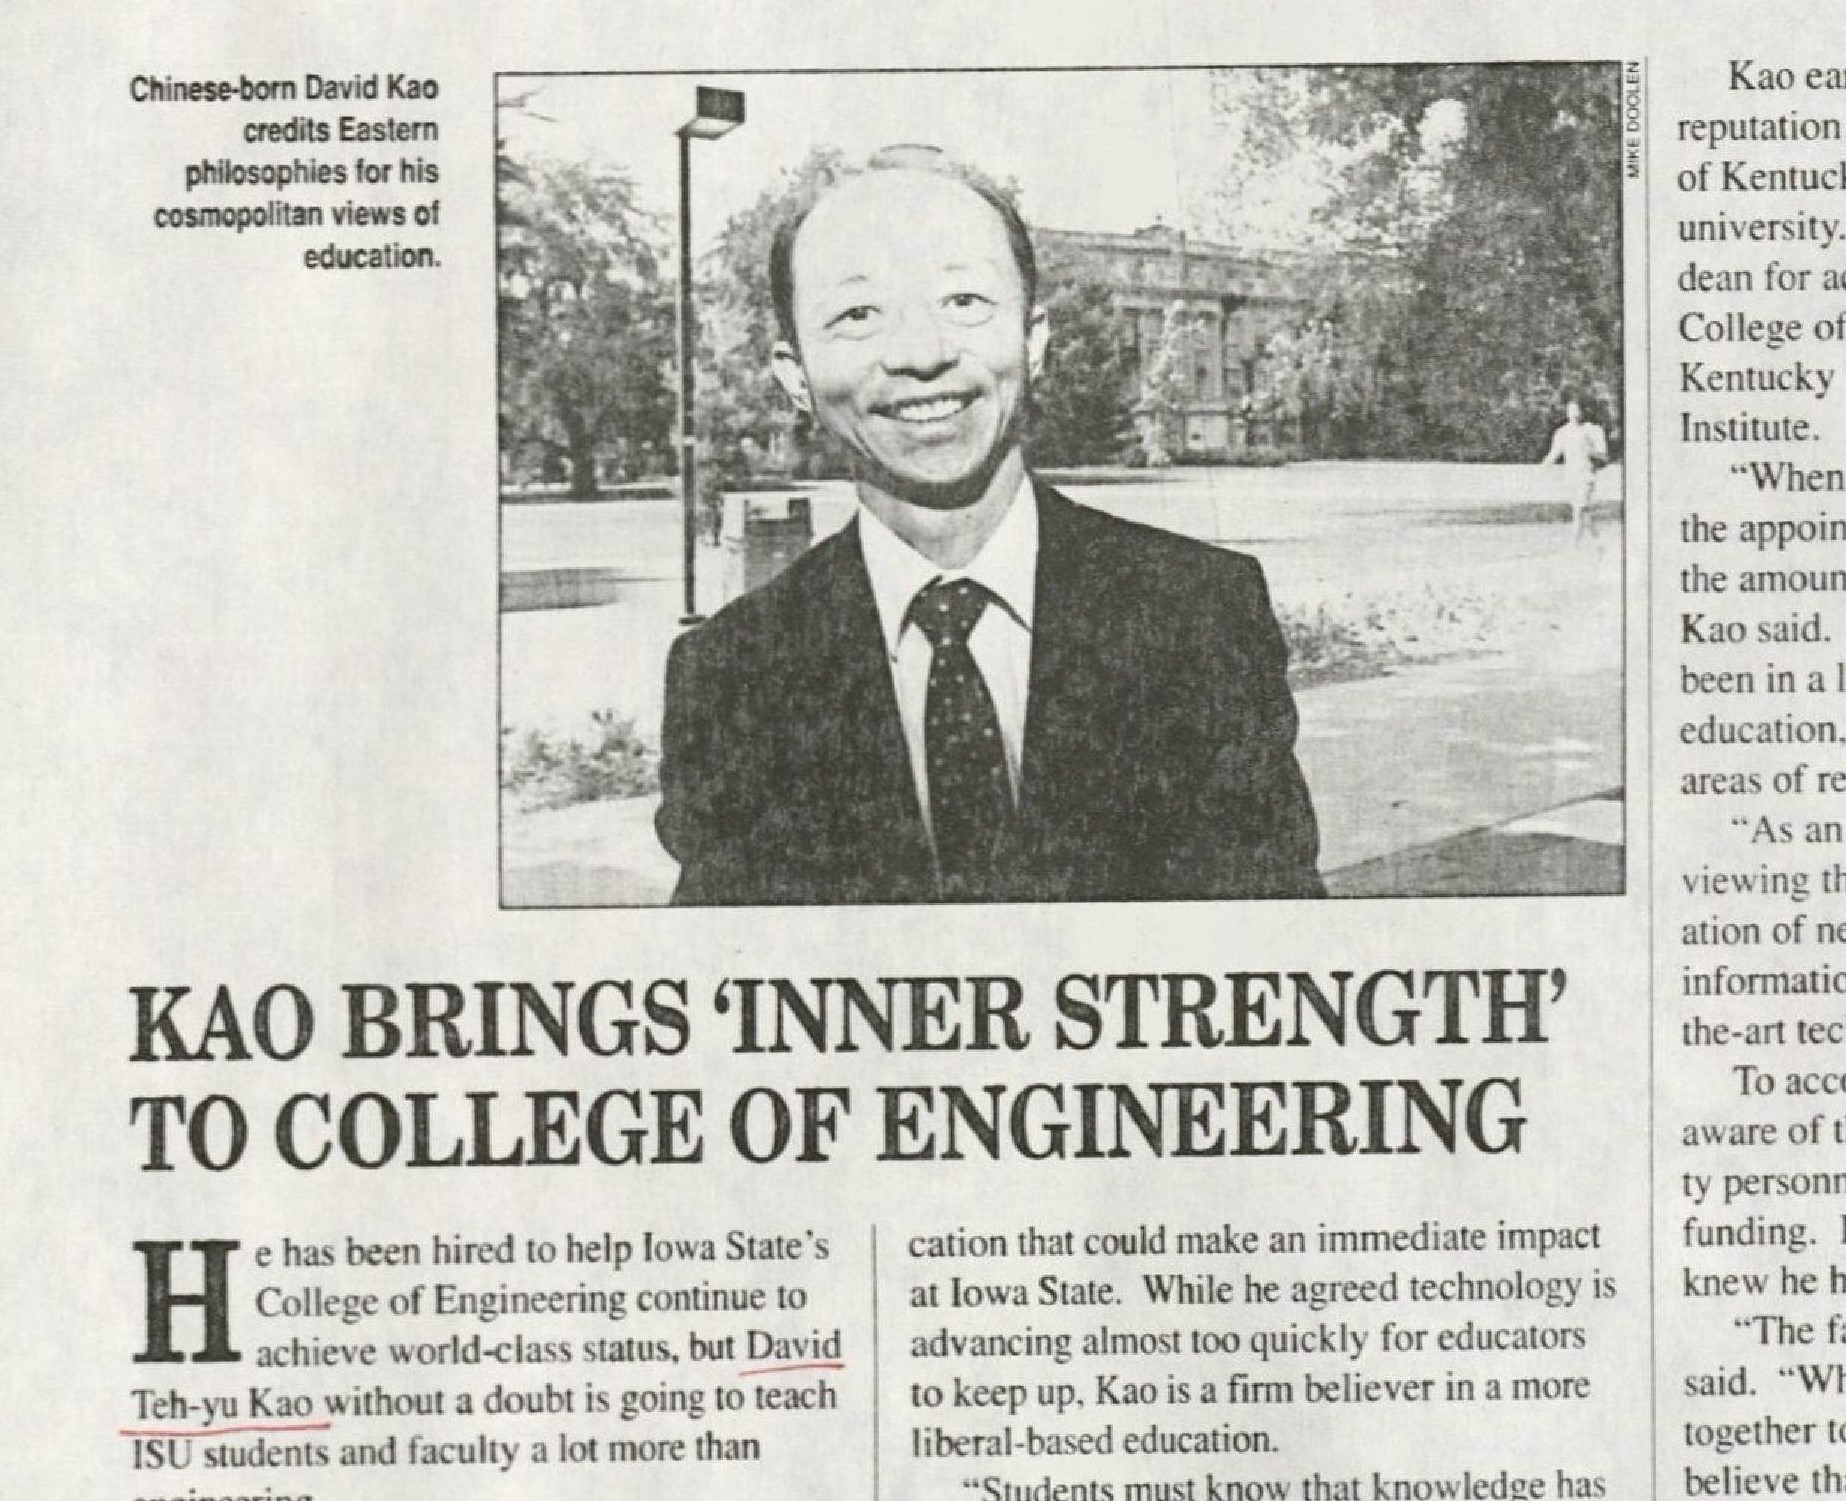 """Article from Visions journal, published by the ISU Alumni Association. Undated. RS 11/1/16, Box 1, Folder 2. Title of the article reads as follows: """"Kao Brings 'Inner Strength' To College of Engineering."""" Photo of Dean Kao. Caption on the photo reads as follows: """"Chinese-born David Kao credits Eastern philosophies for his cosmopolitan views of education."""""""